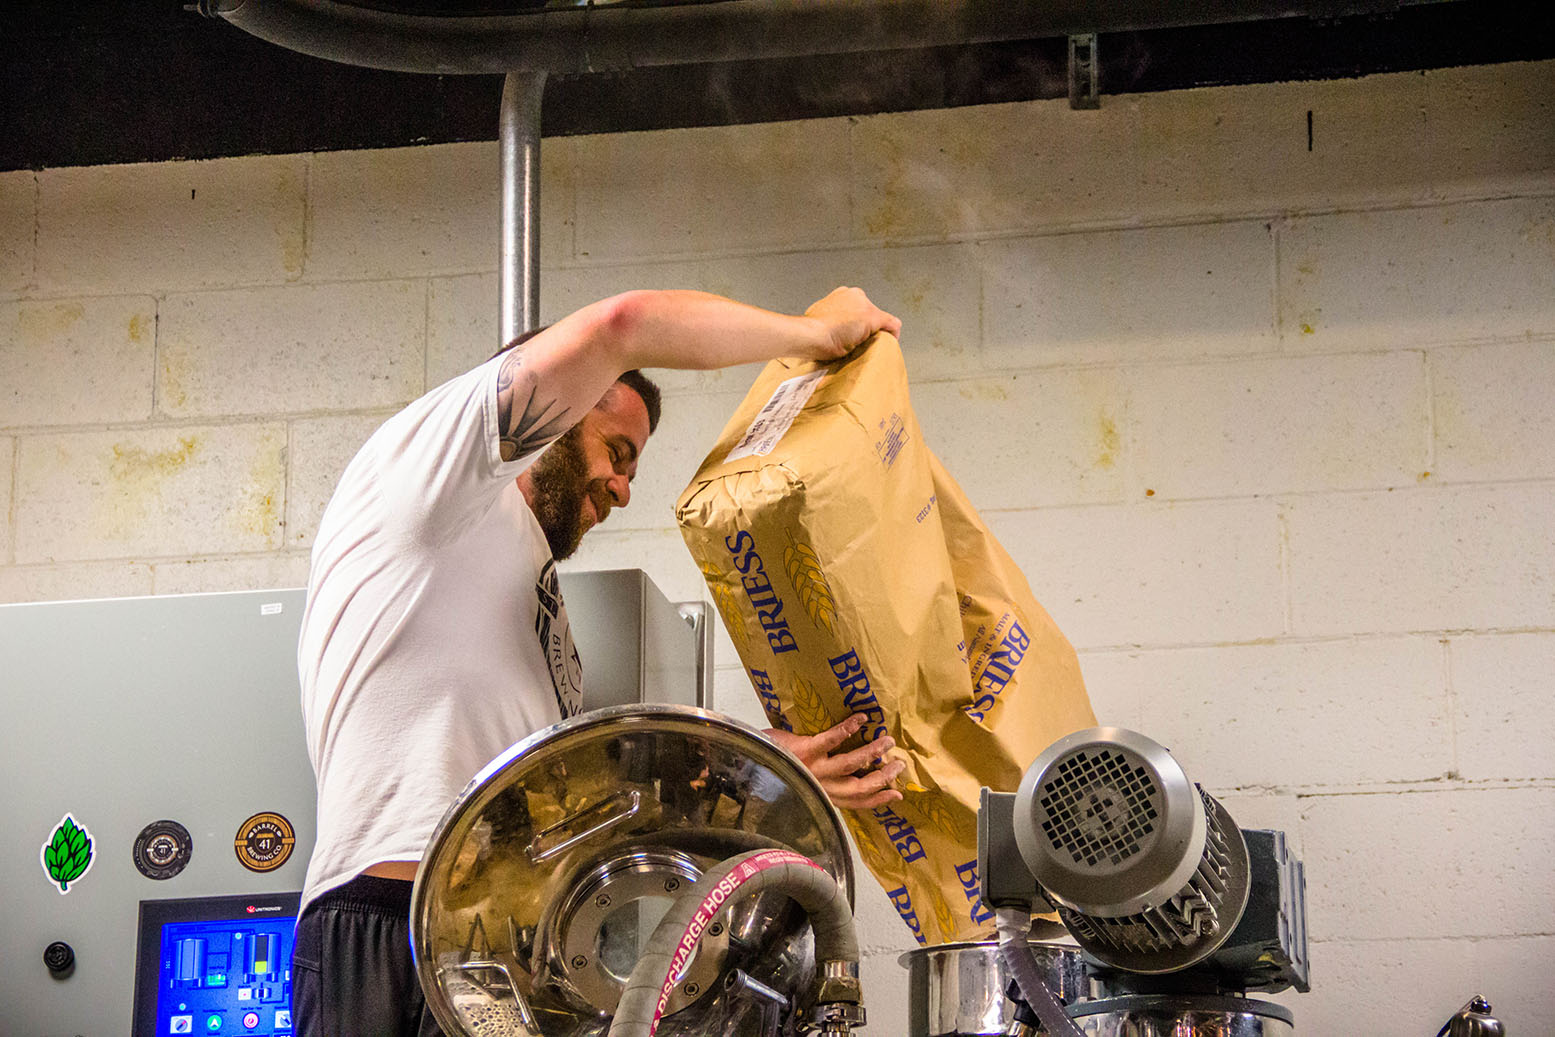 Nathan Sharpless pouring barley into a brewing drum